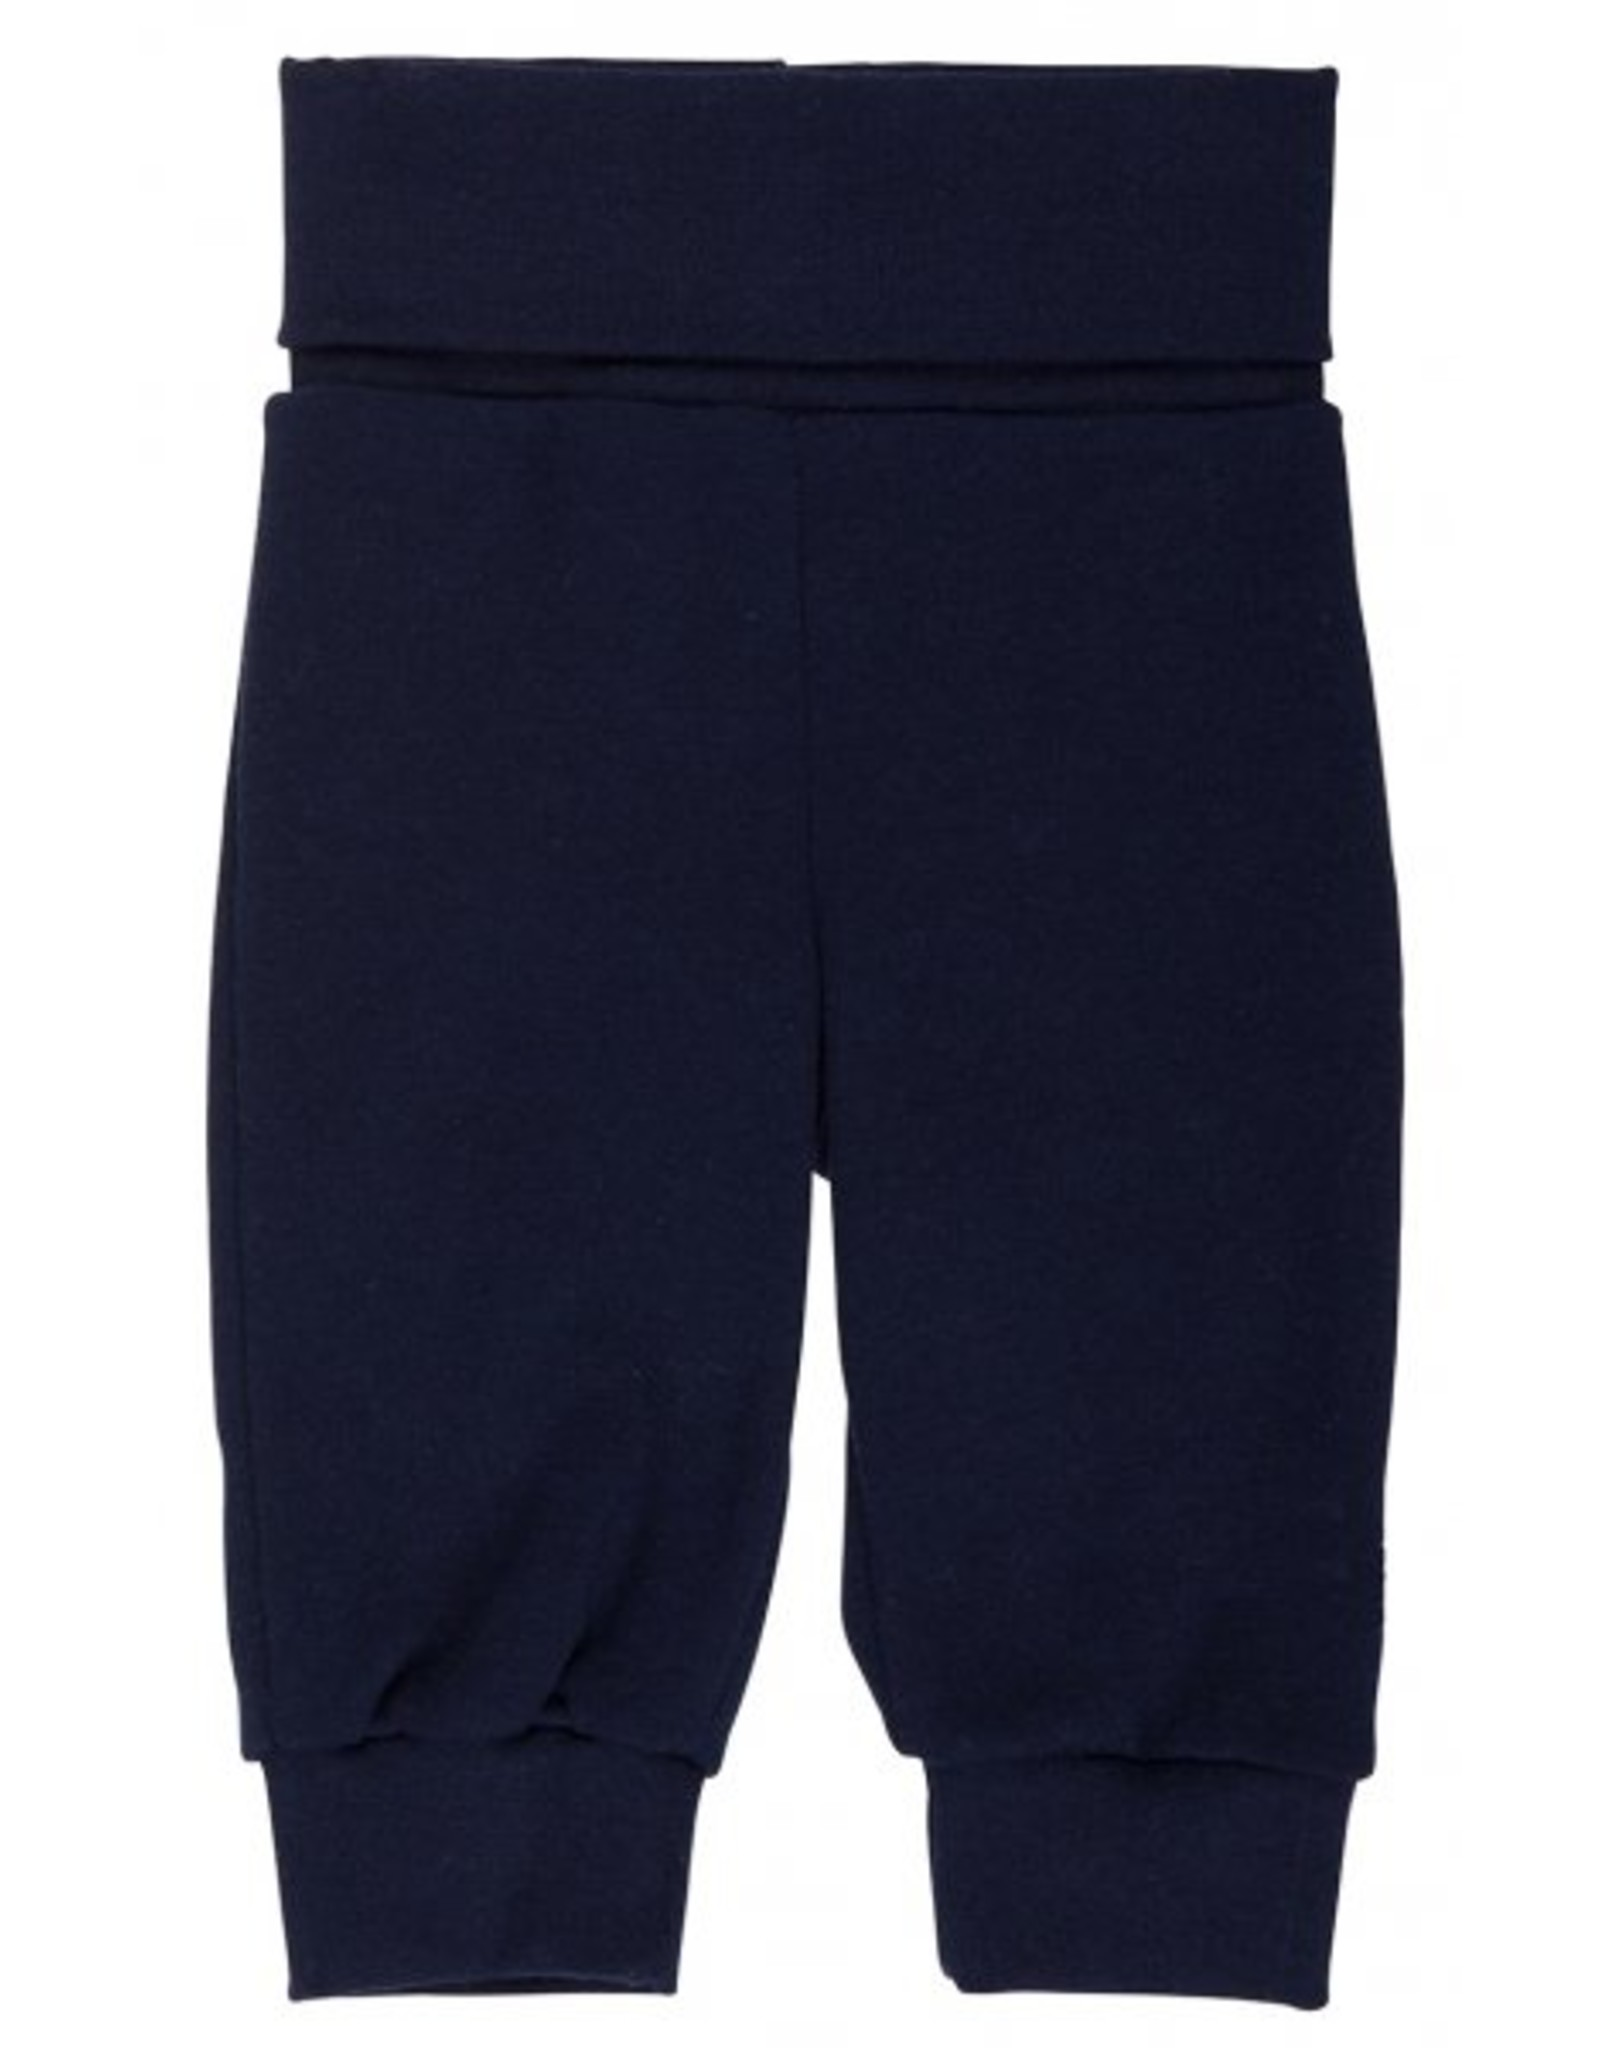 loud+proud Children's trousers - dark blue